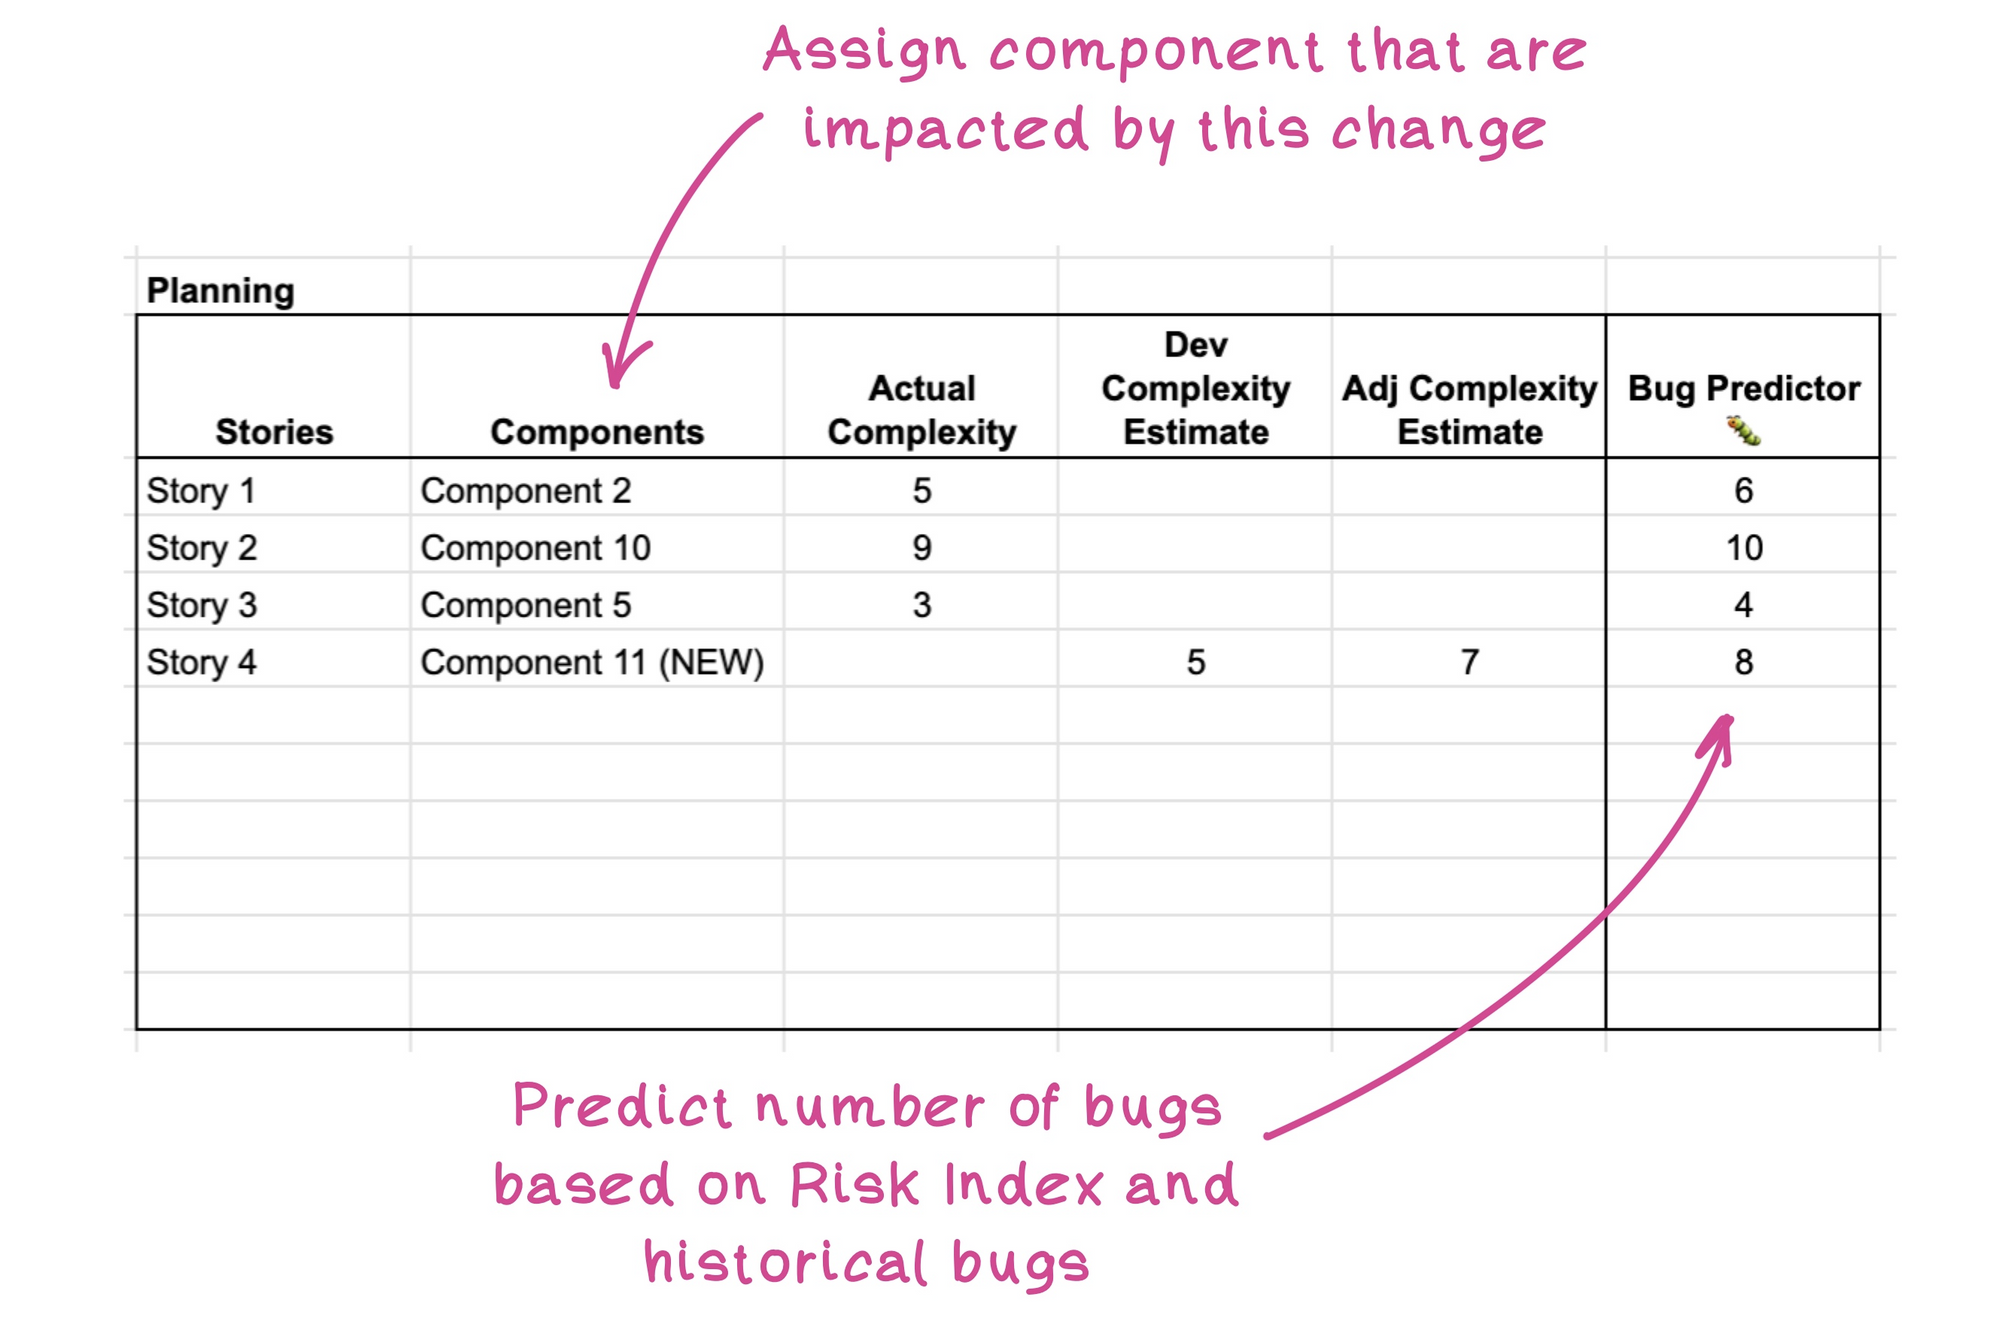 Predict number of bugs using Risk index and number of past bugs